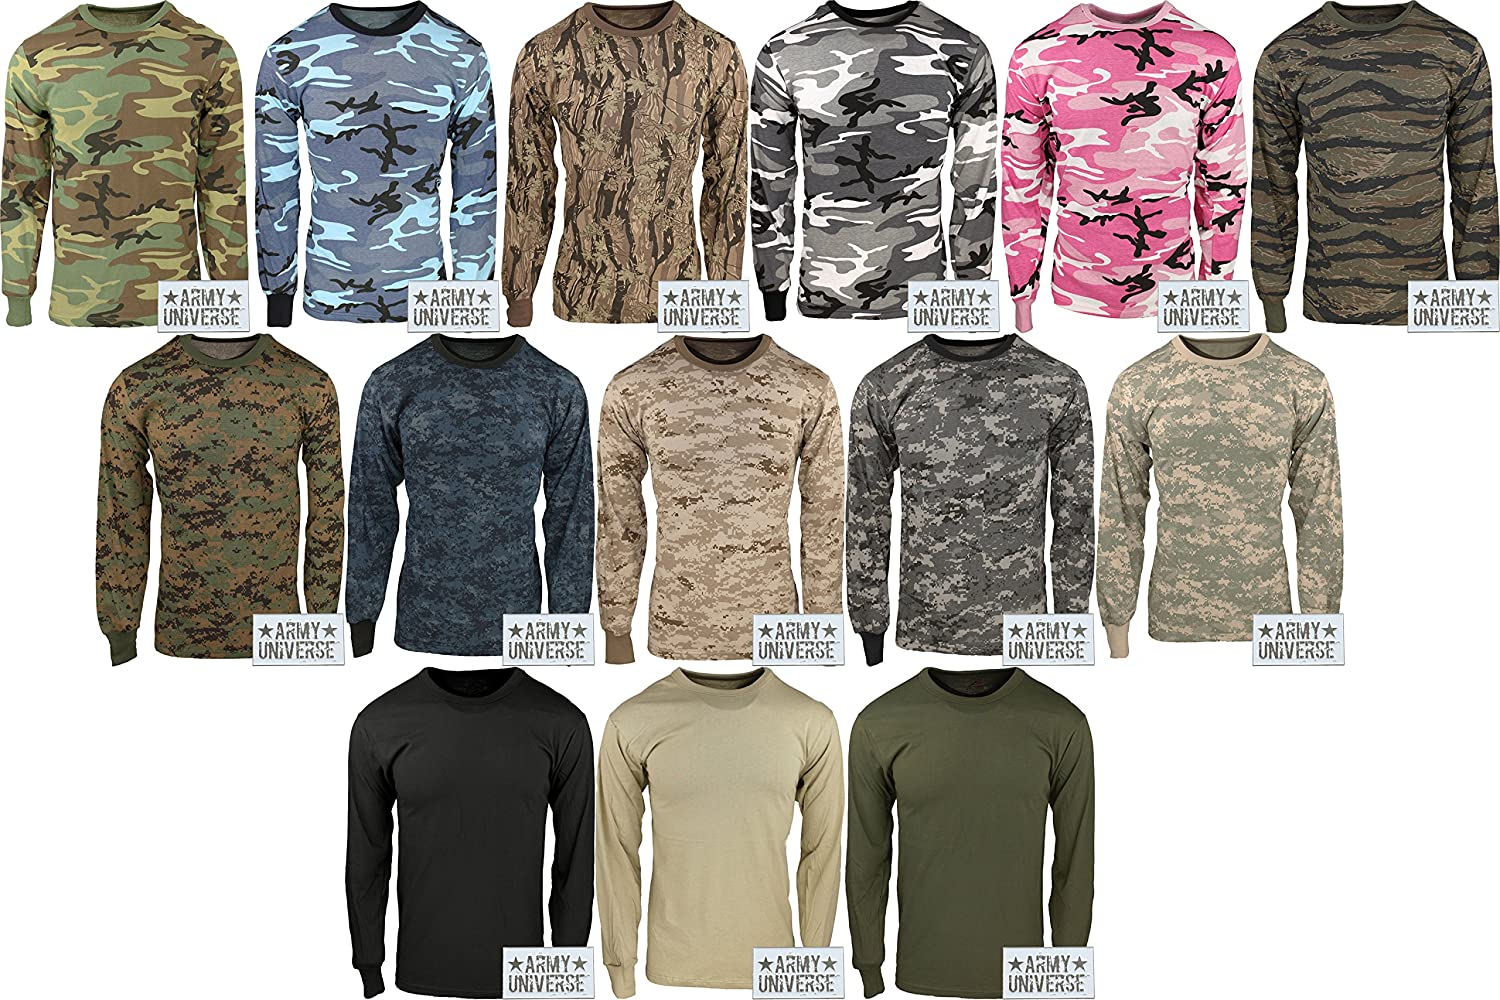 Amazon.com  Military Camouflage Long Sleeve T-Shirt Camo Army Tee With  ArmyUniverse Pin  Clothing bce70e1ce48